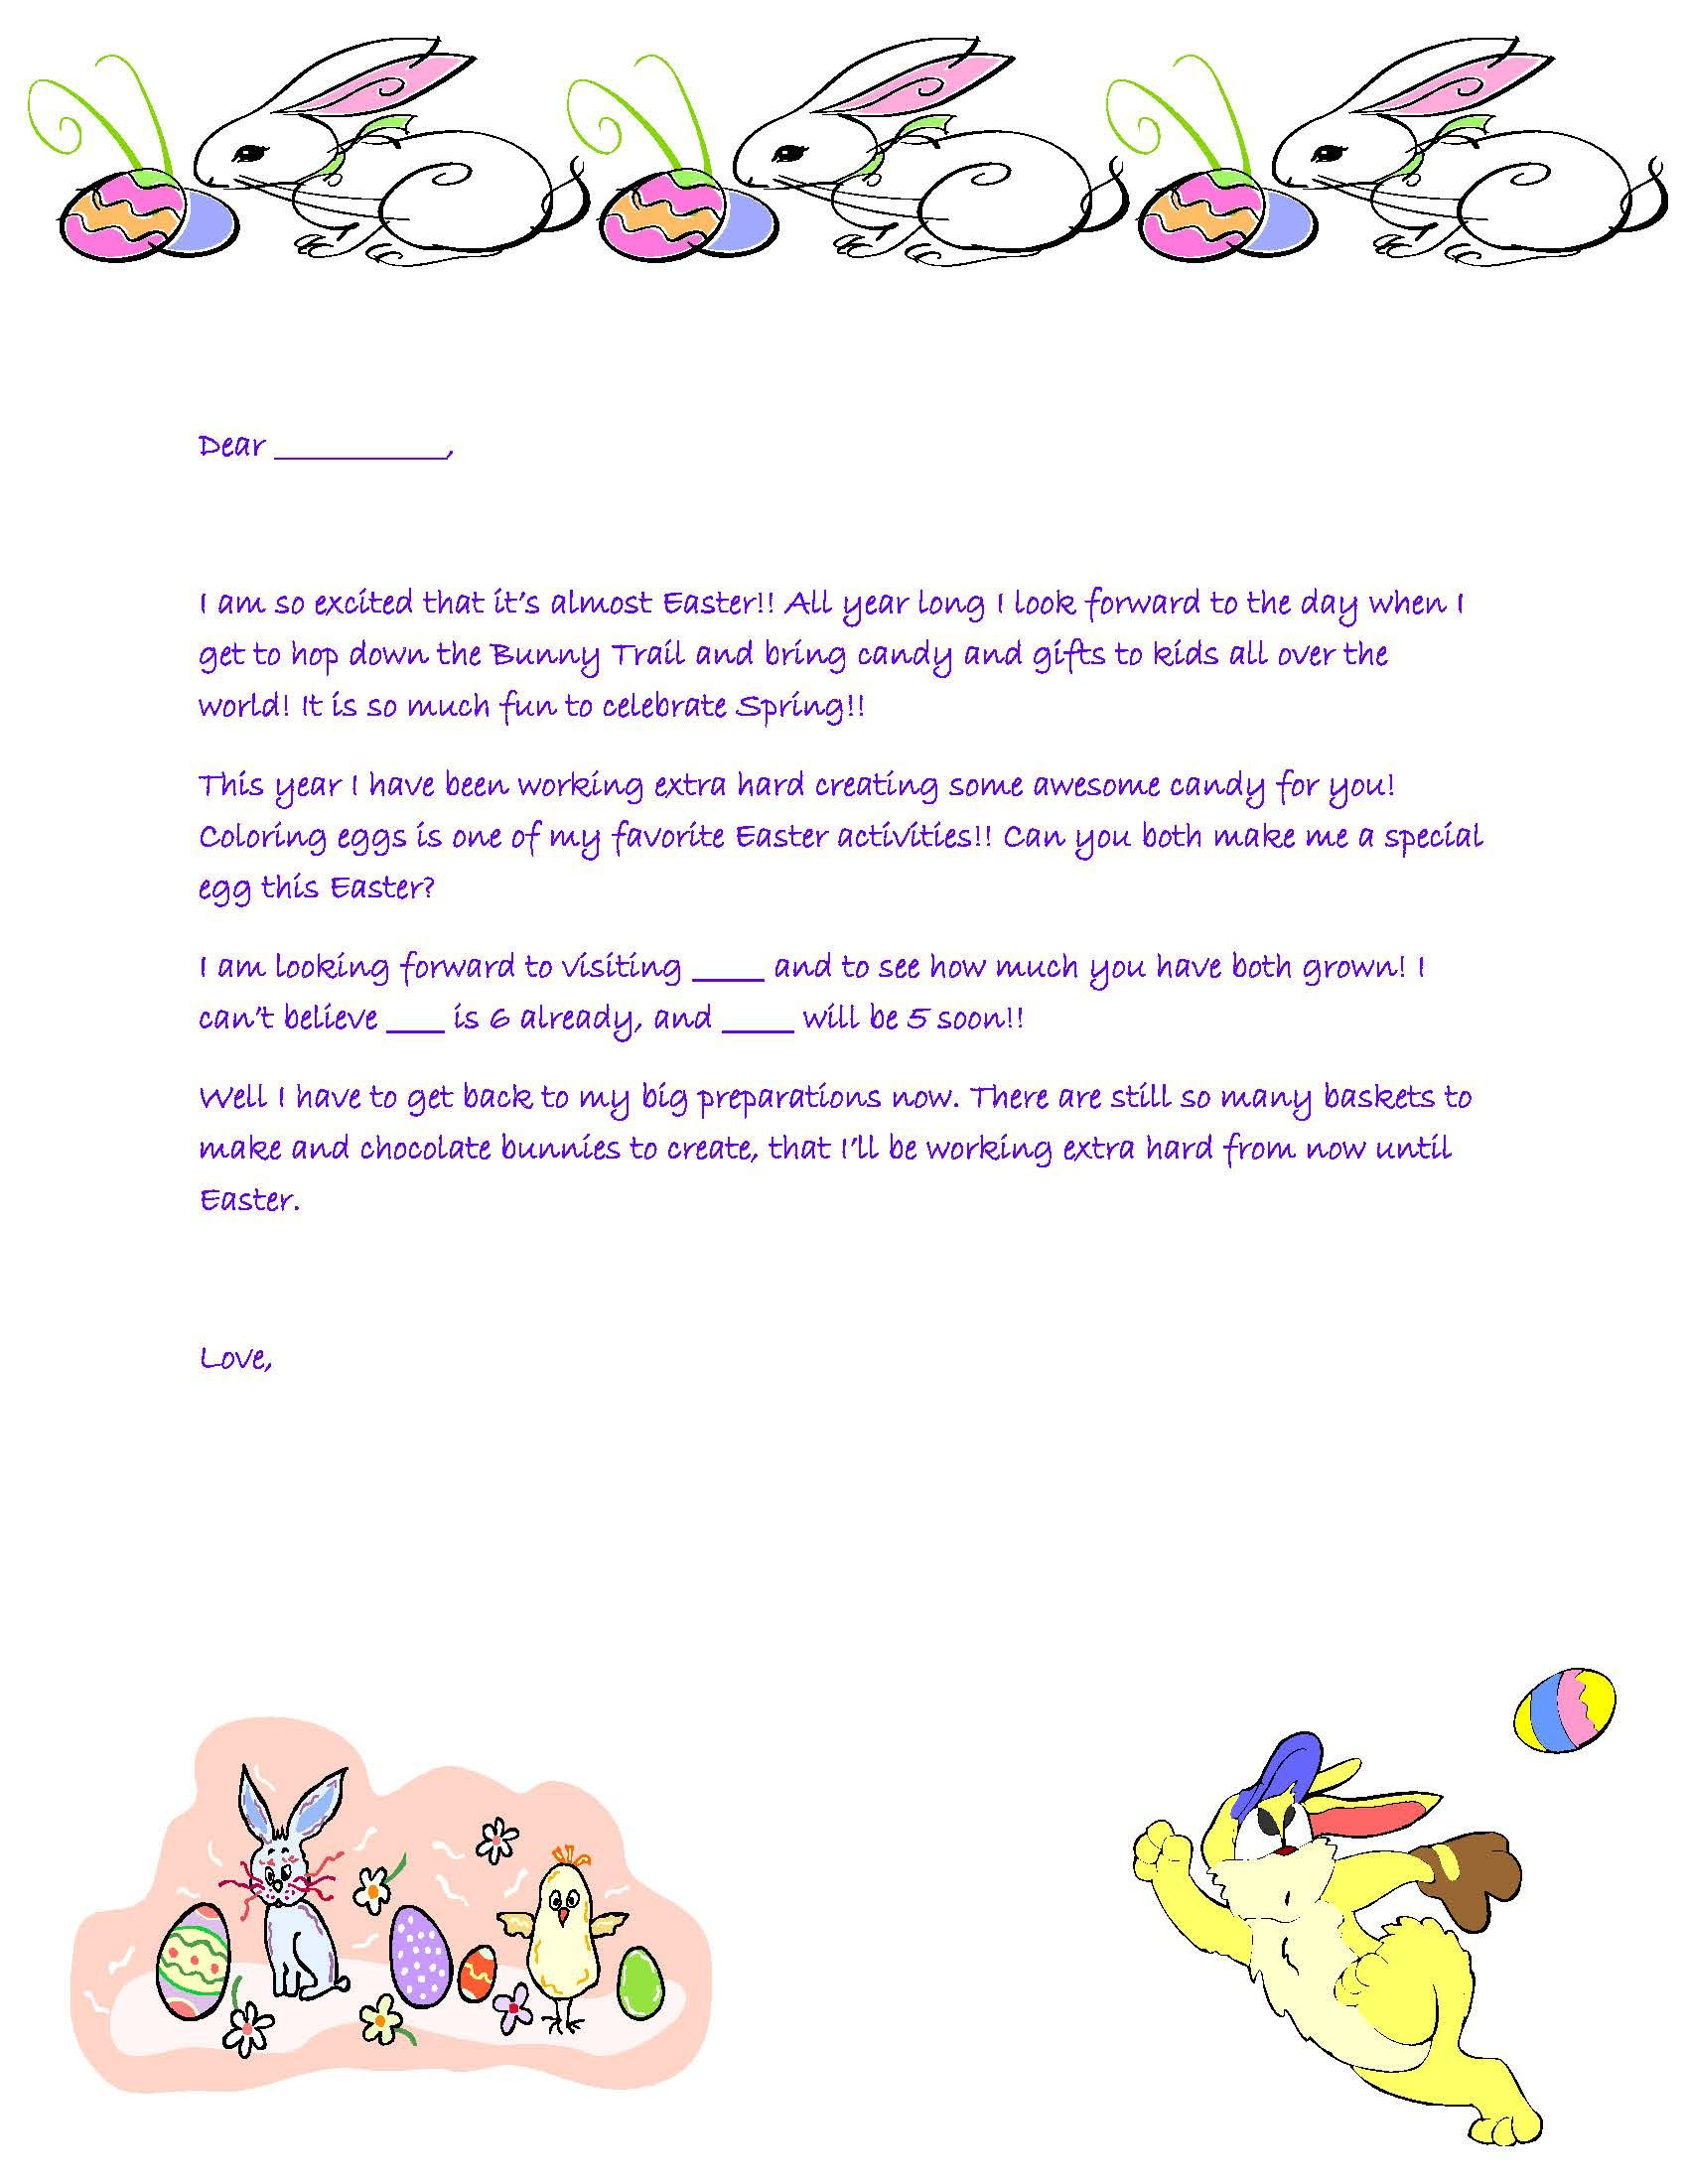 Letter From Easter Bunny   Easter Bunny Letters